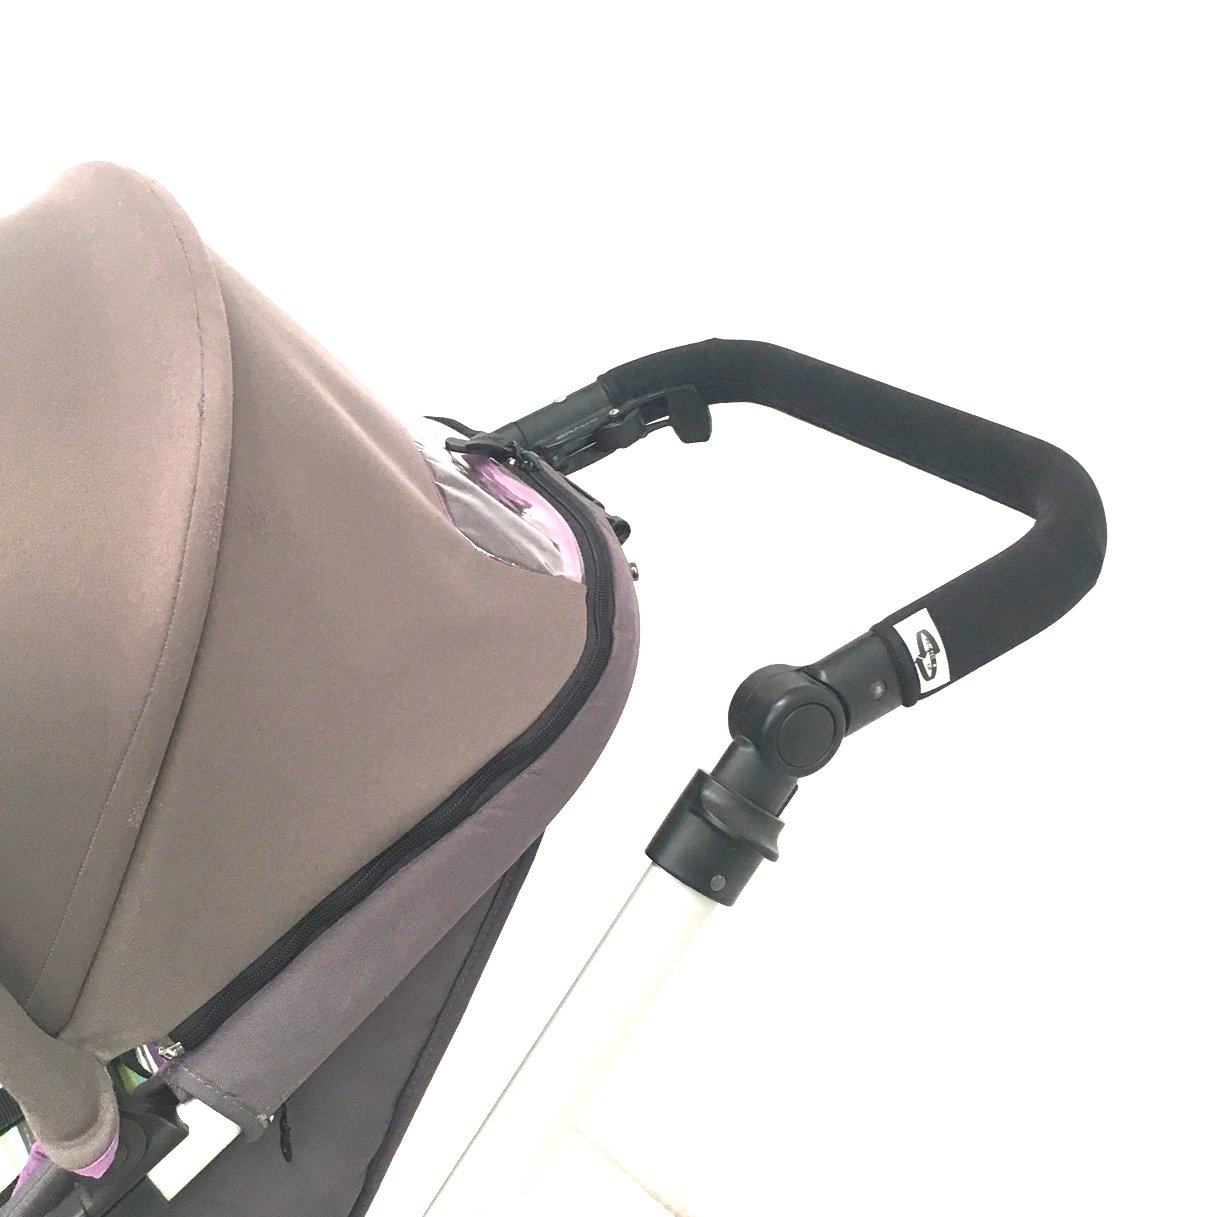 Amazon.com : Fitted Cover For Jane Rider/Muum and Concord Neo handlebar (Does not replace the rubber) : Baby